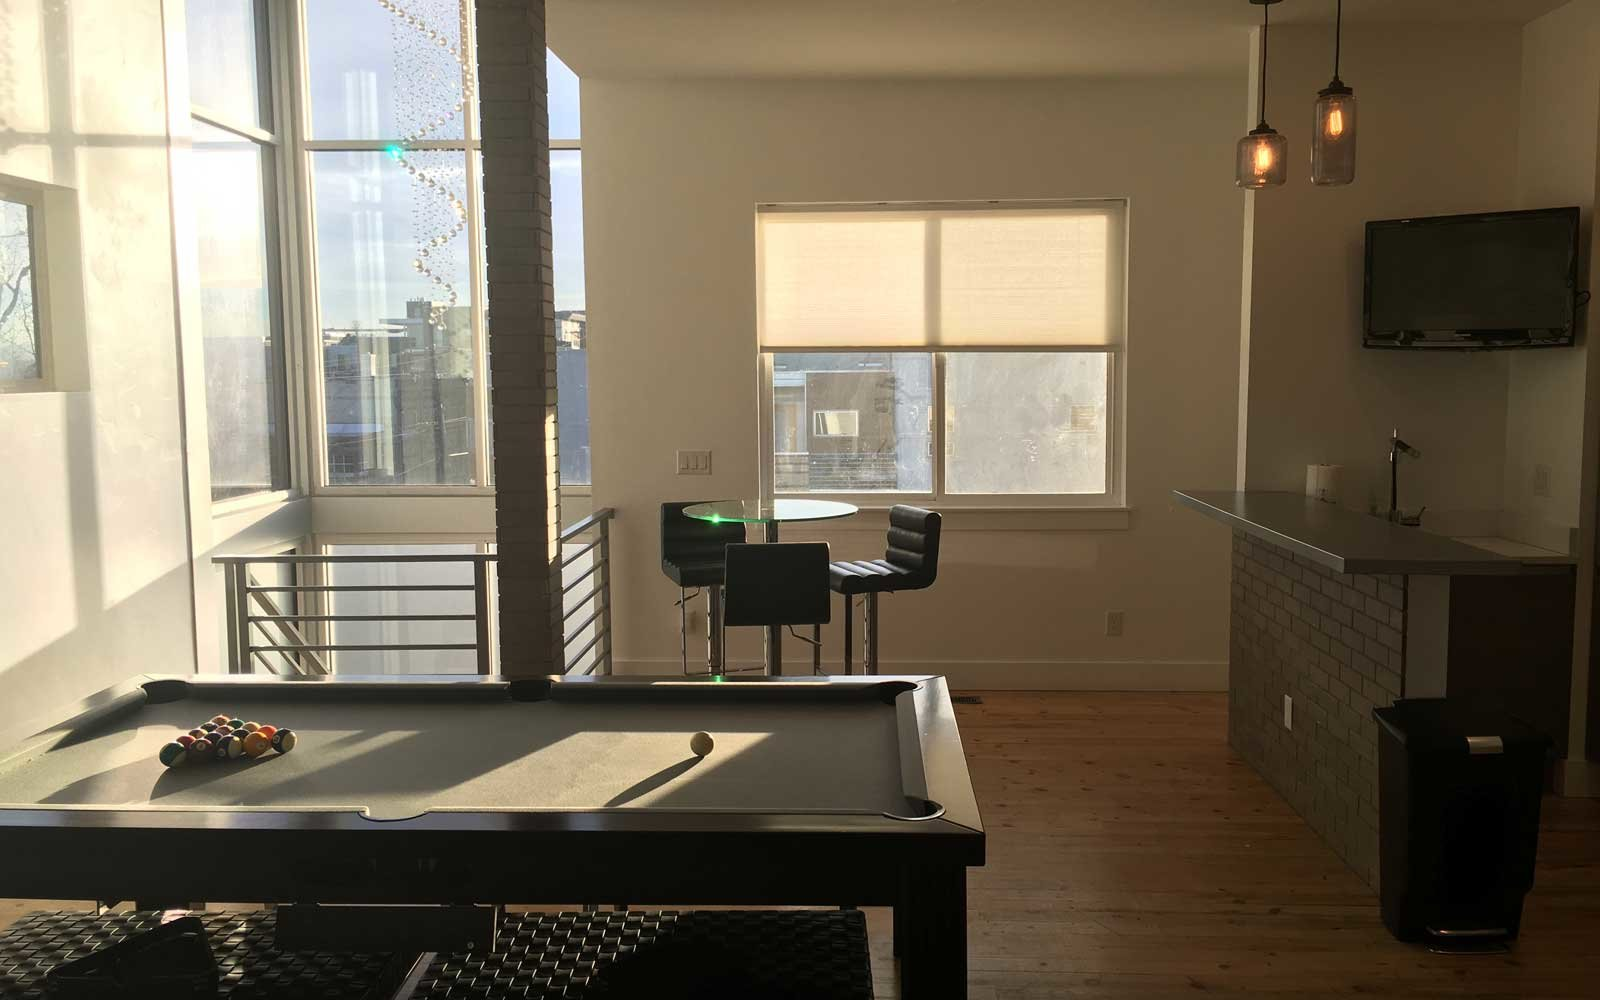 Airbnb Denver for best New Years Eve Trip